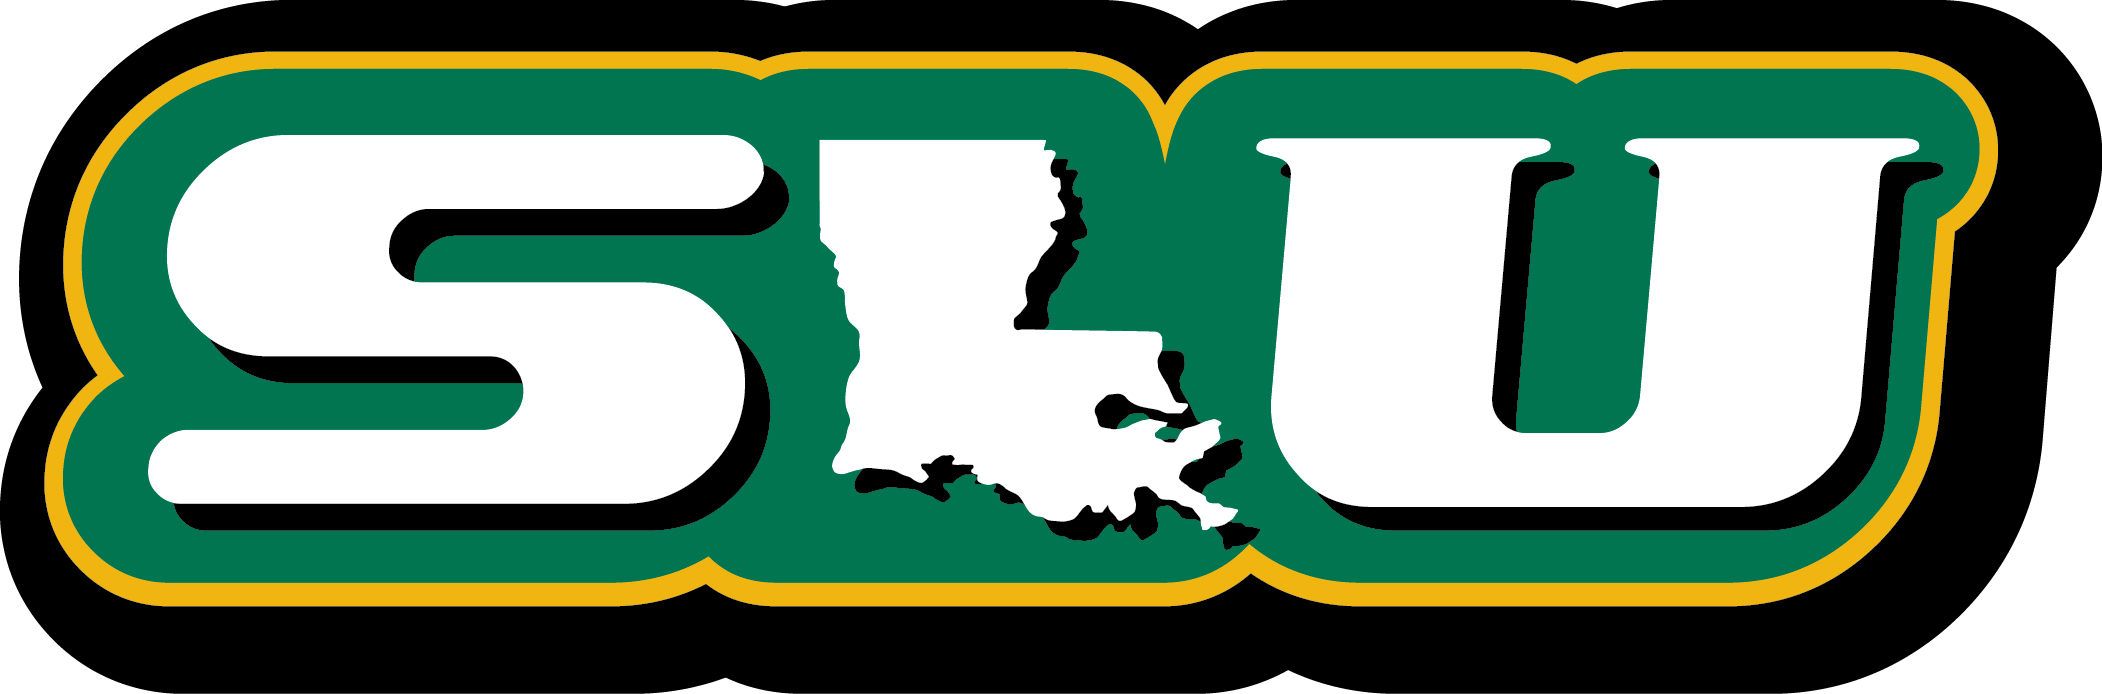 Southeastern louisiana university images